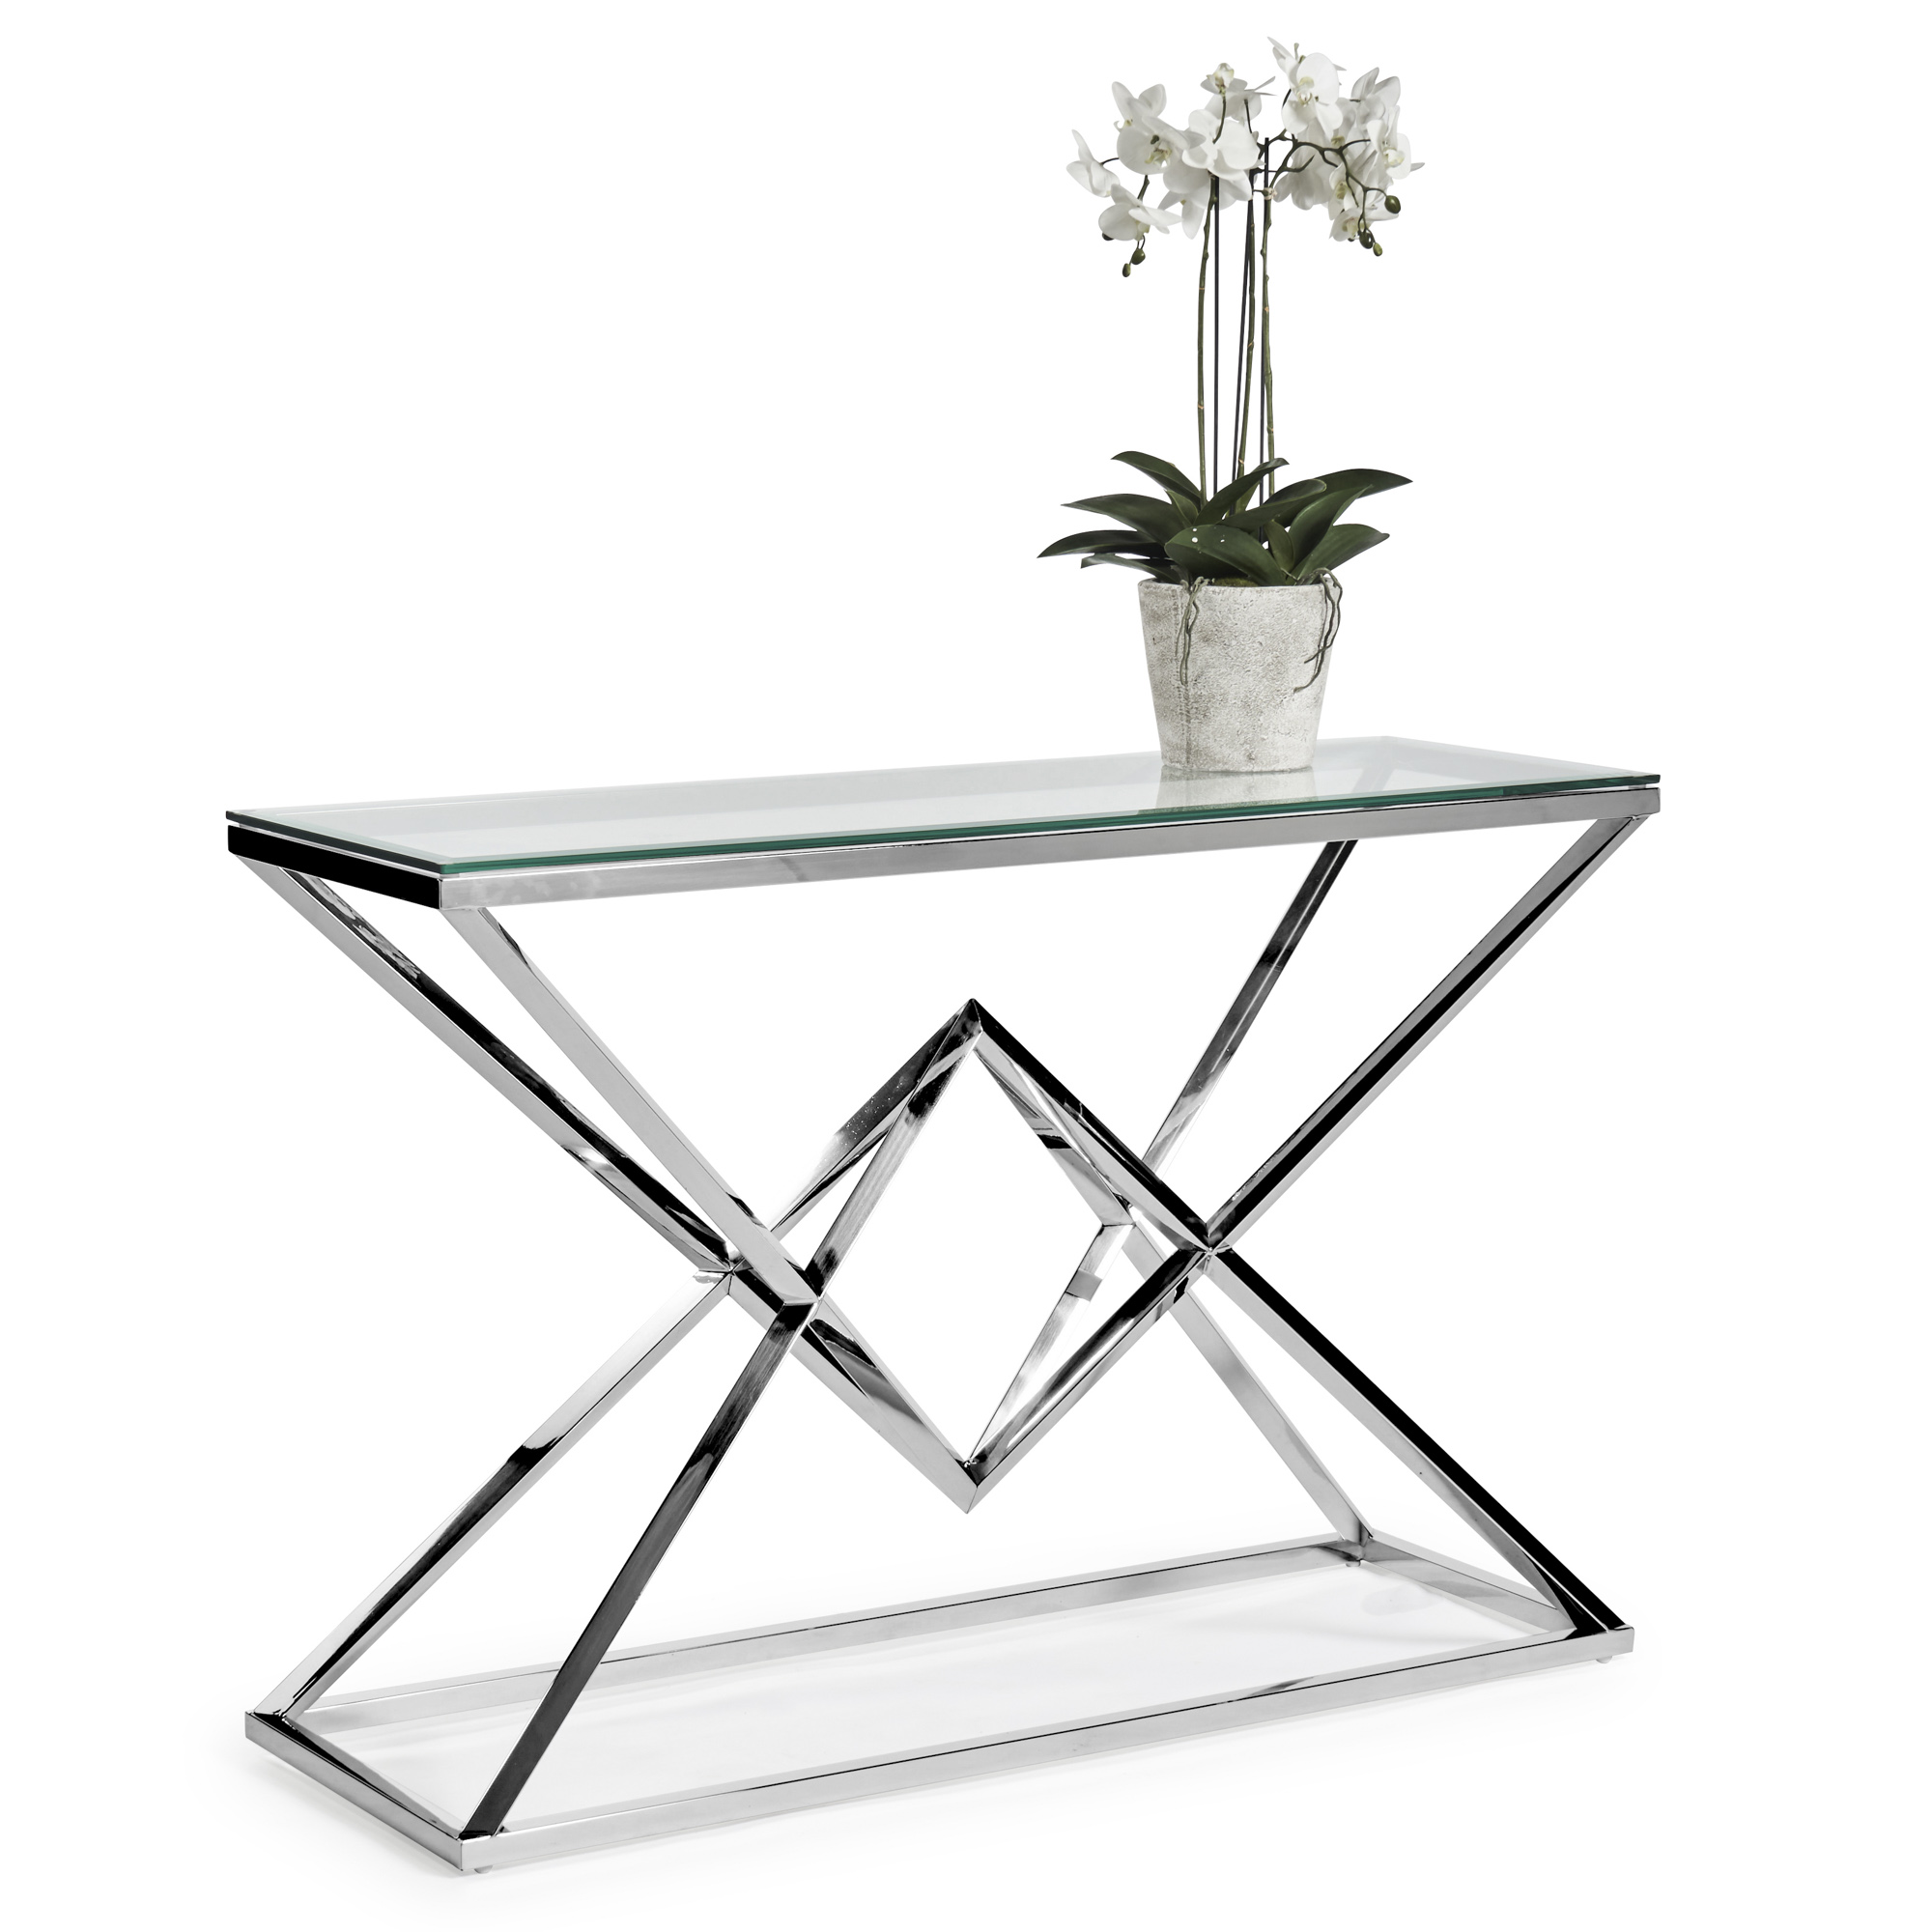 Small Glass Console Table With Polished Stainless Steel Pyramid Base